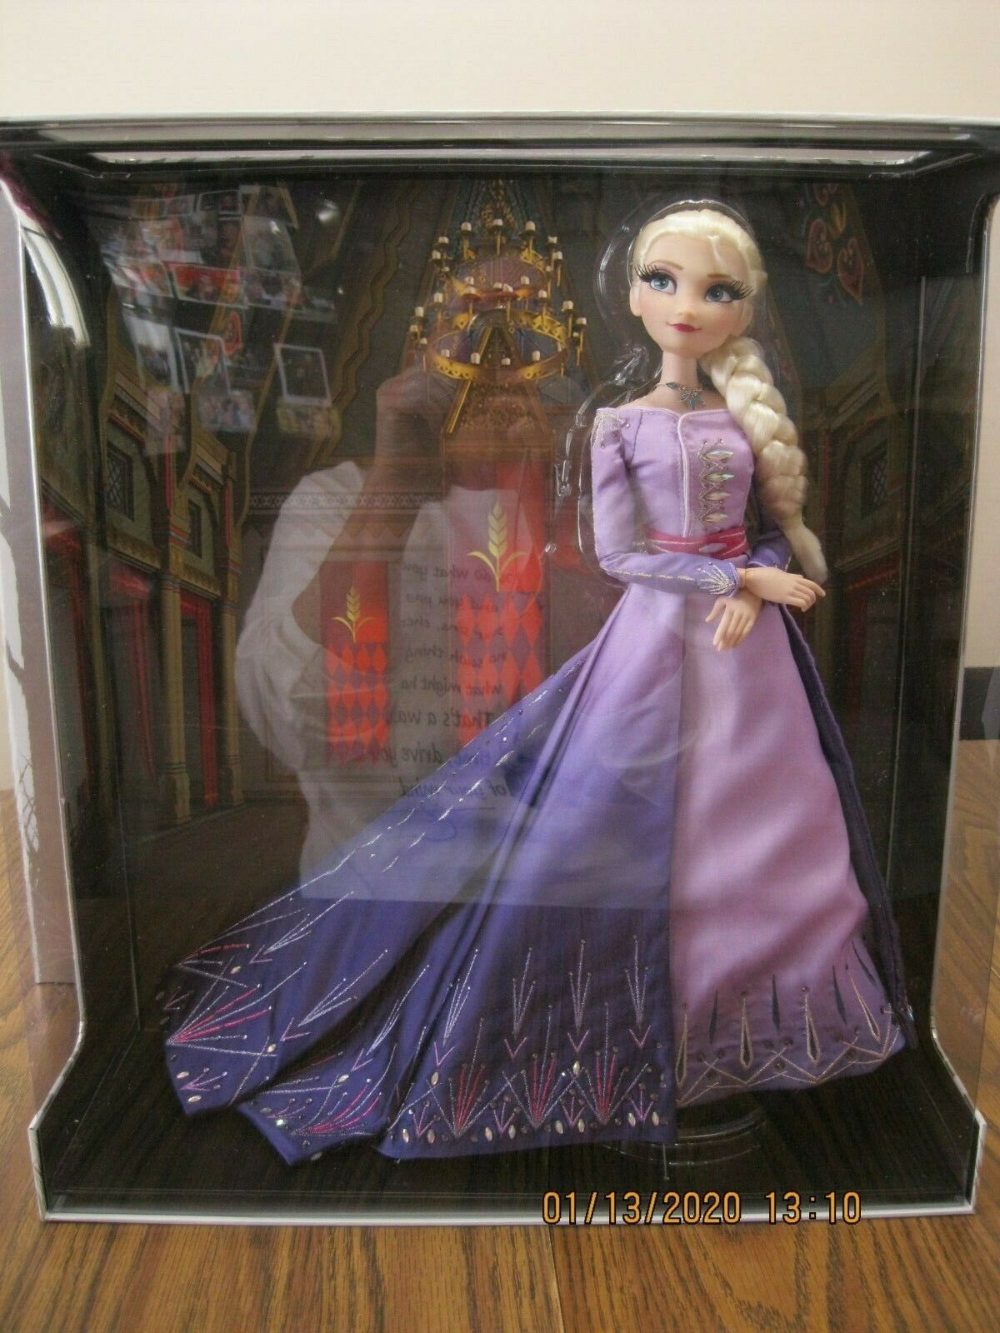 Frozen 2 Limited Edition Disney Saks 17 Elsa Doll Nrfb Gorgeous Ebay Elsa Doll Disney Barbie Dolls Frozen Elsa Dress